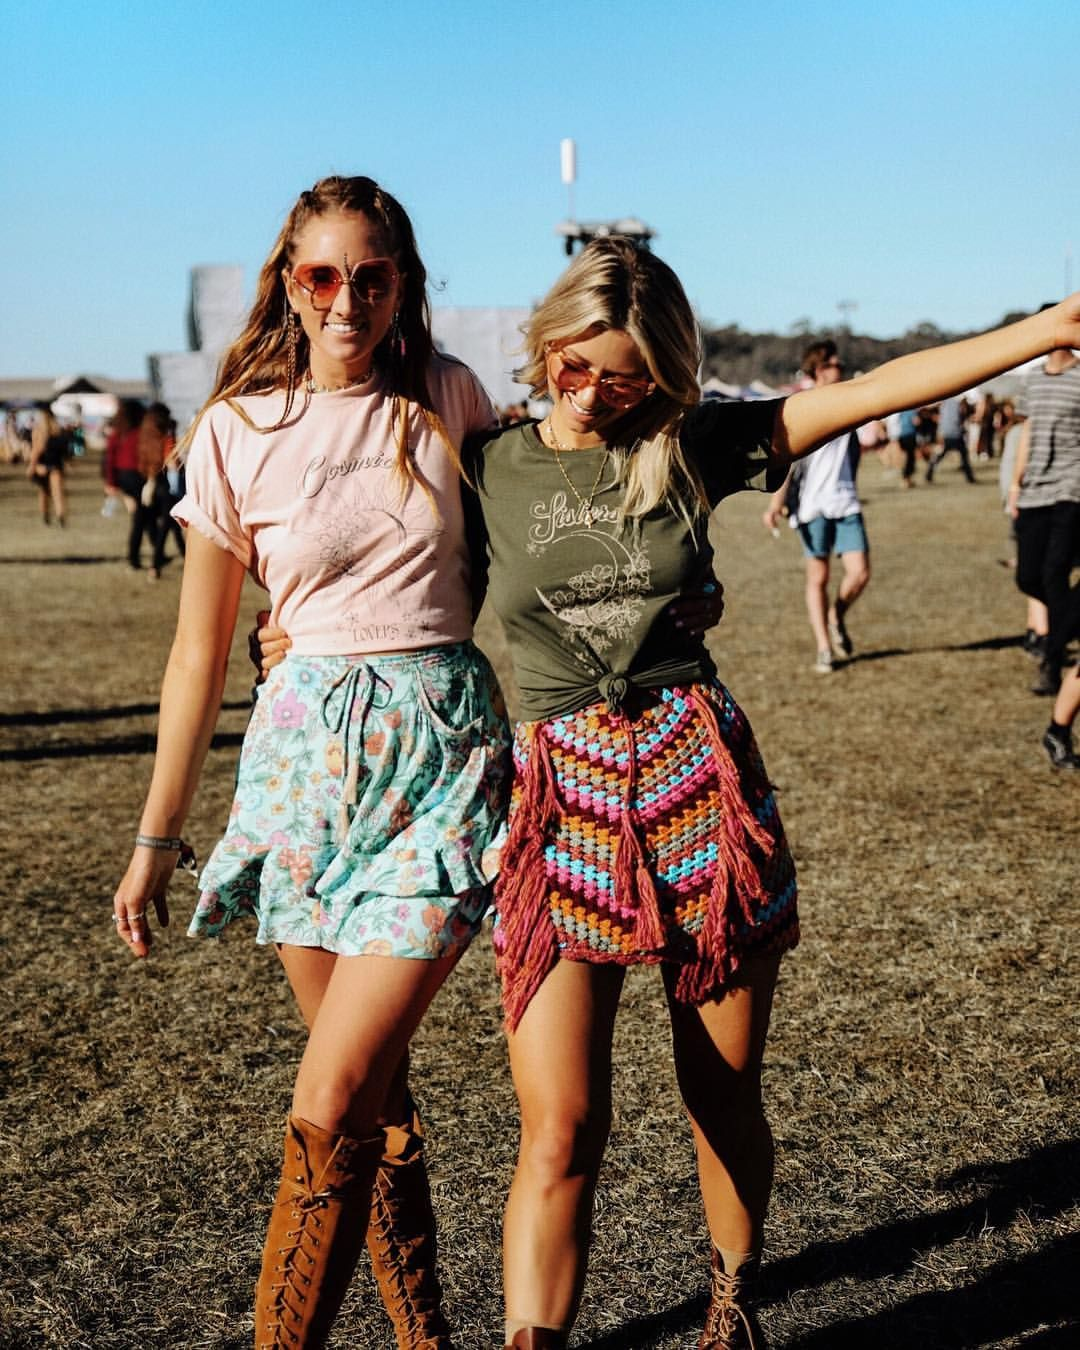 Some Useful Tips To Choose Your Outfits For Oktoberfest